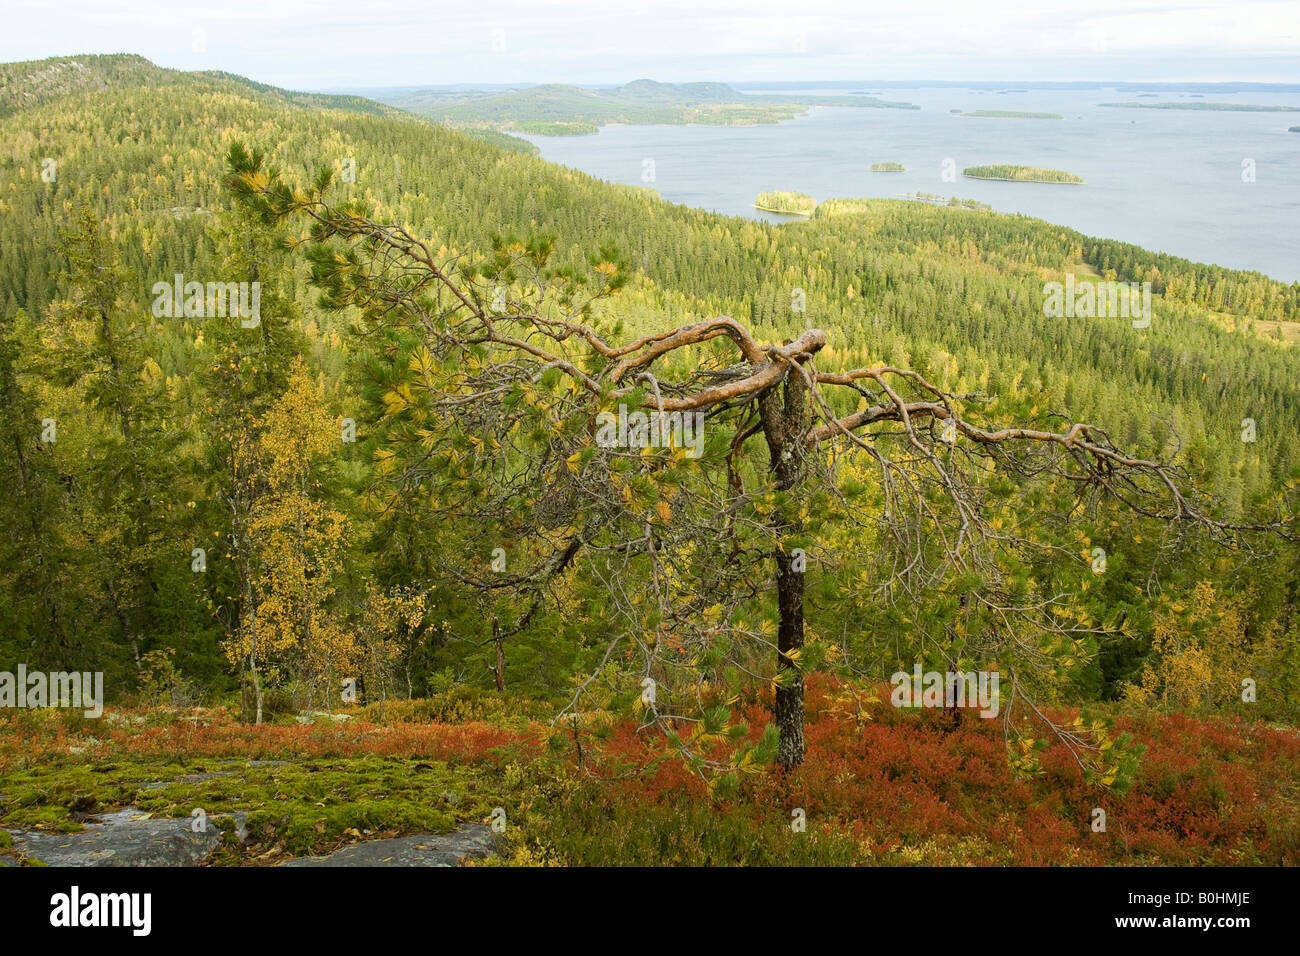 Lake Pielinen, pines, forest, autumn, Koli National Park, Finland, Scandinavia - Stock Image